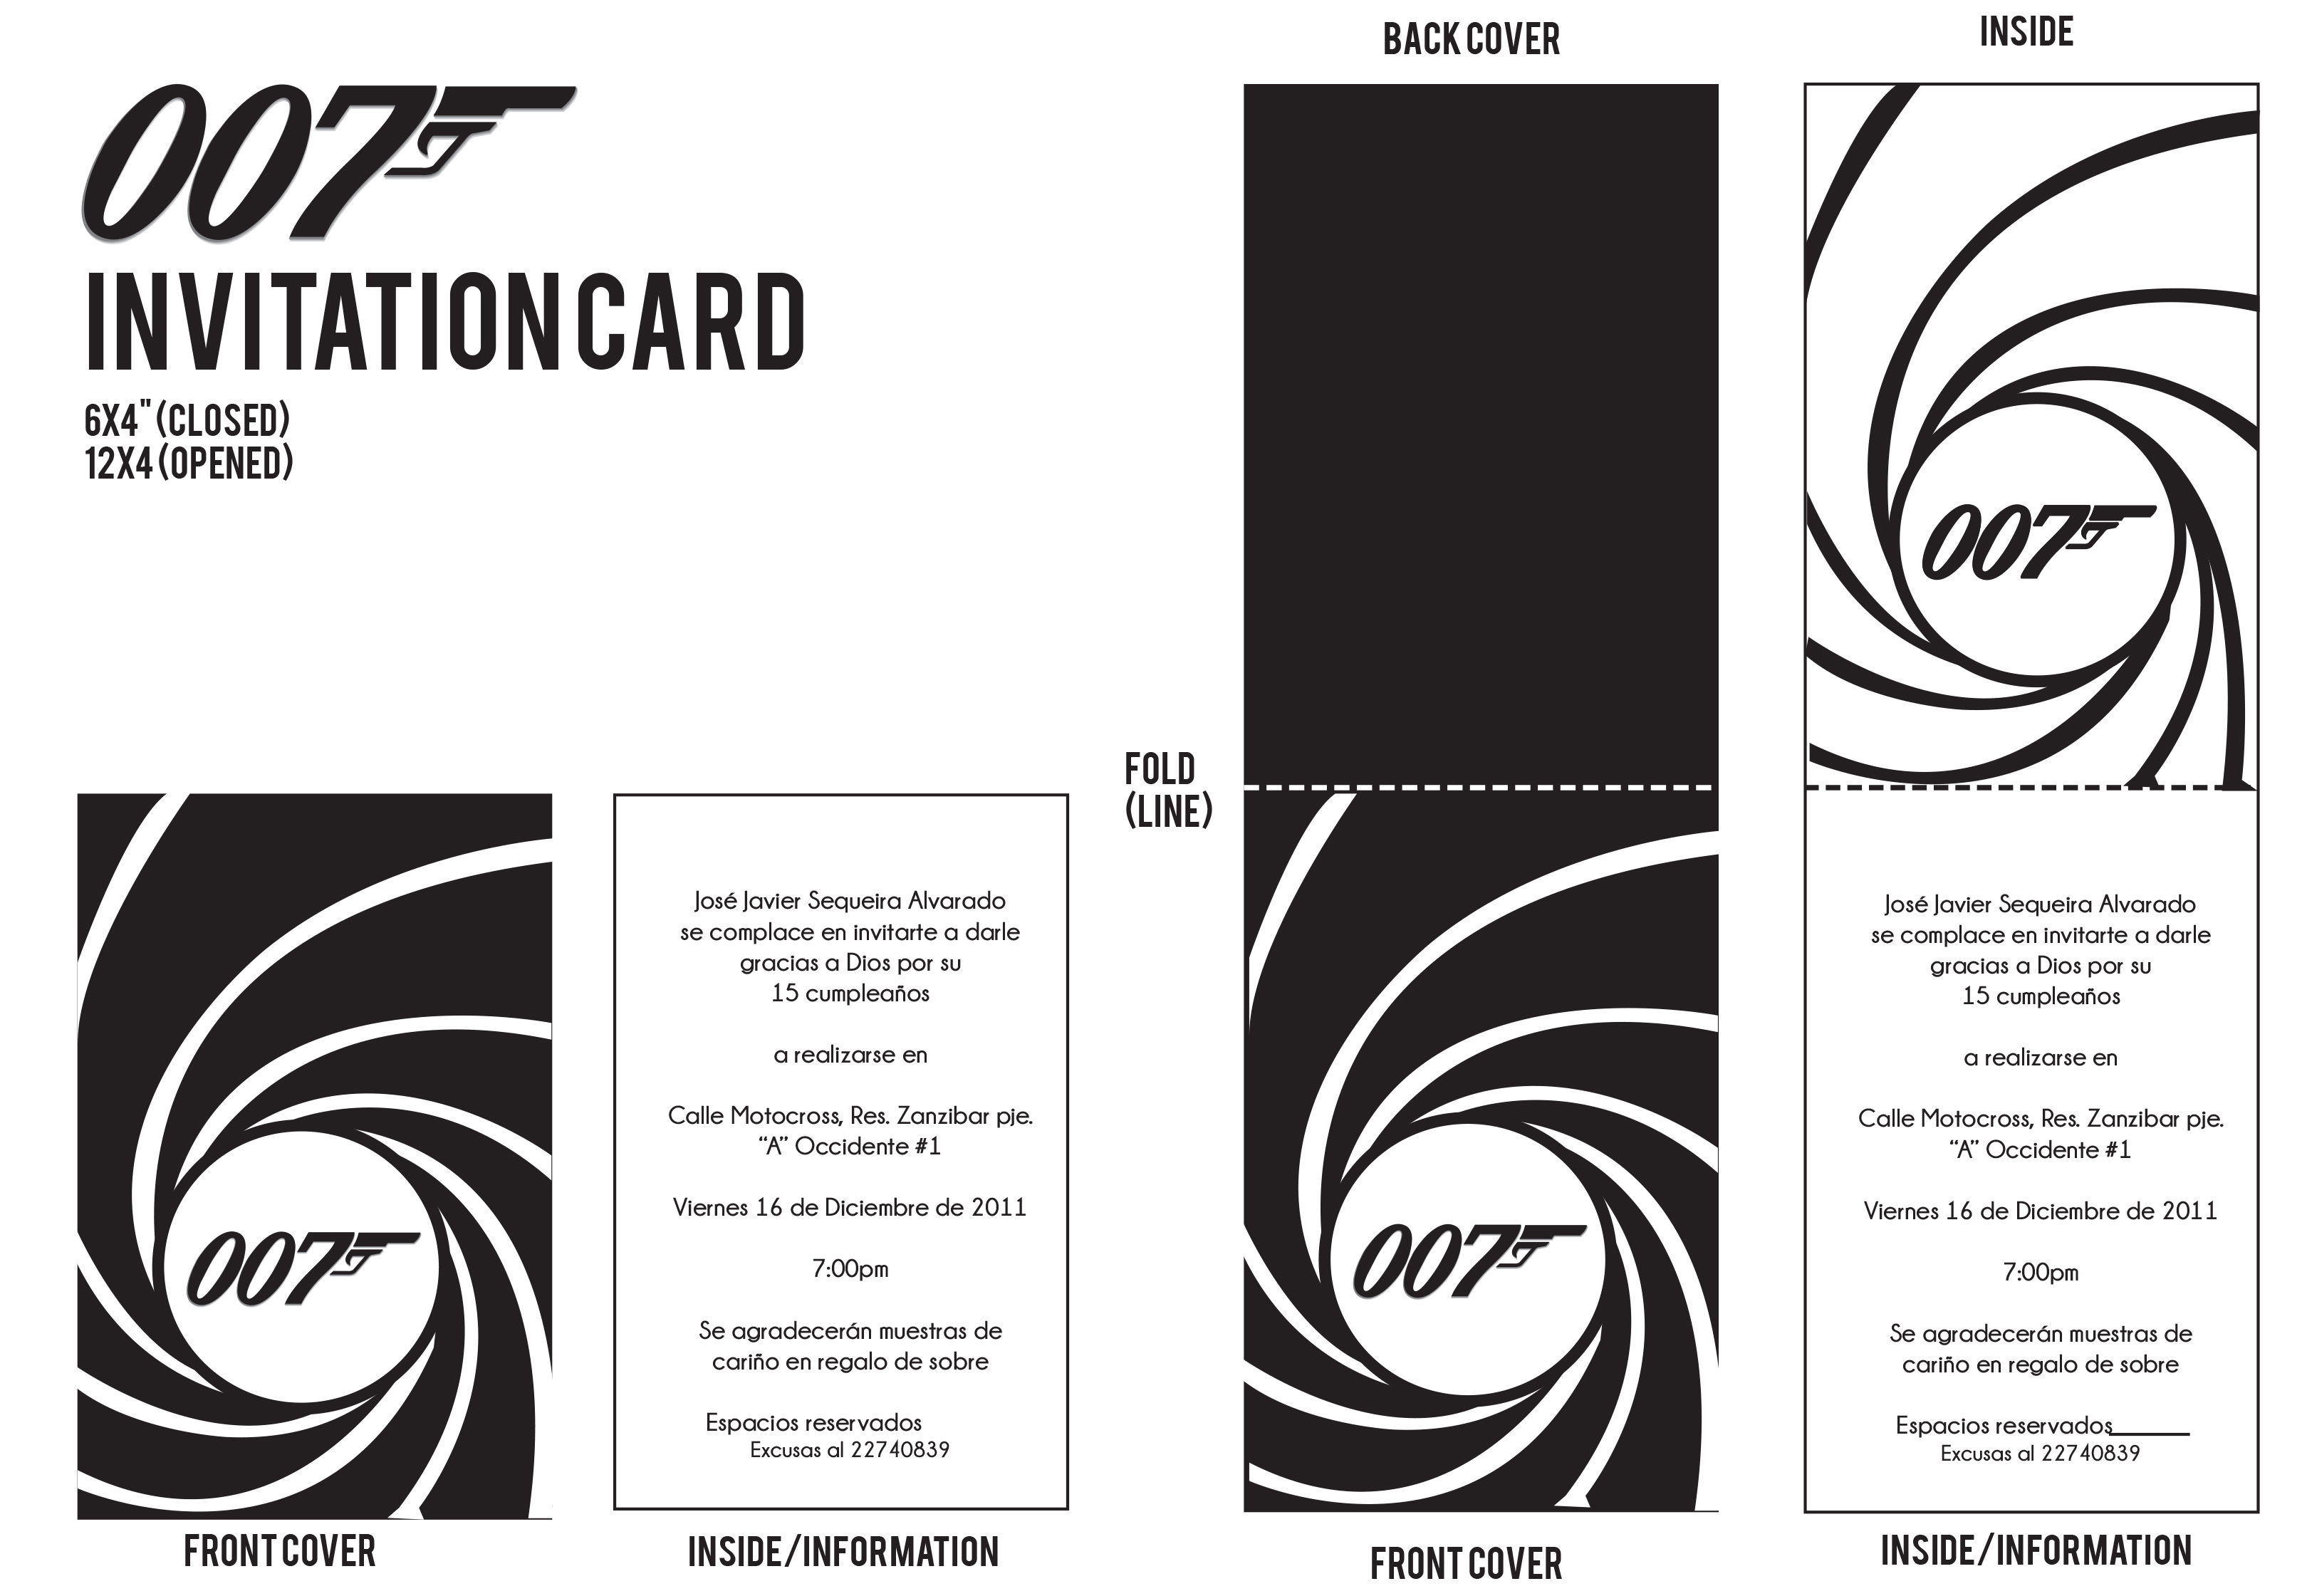 007 Casino Invitations Related Keywords Suggestions 007 Casino – 007 Party Invitations